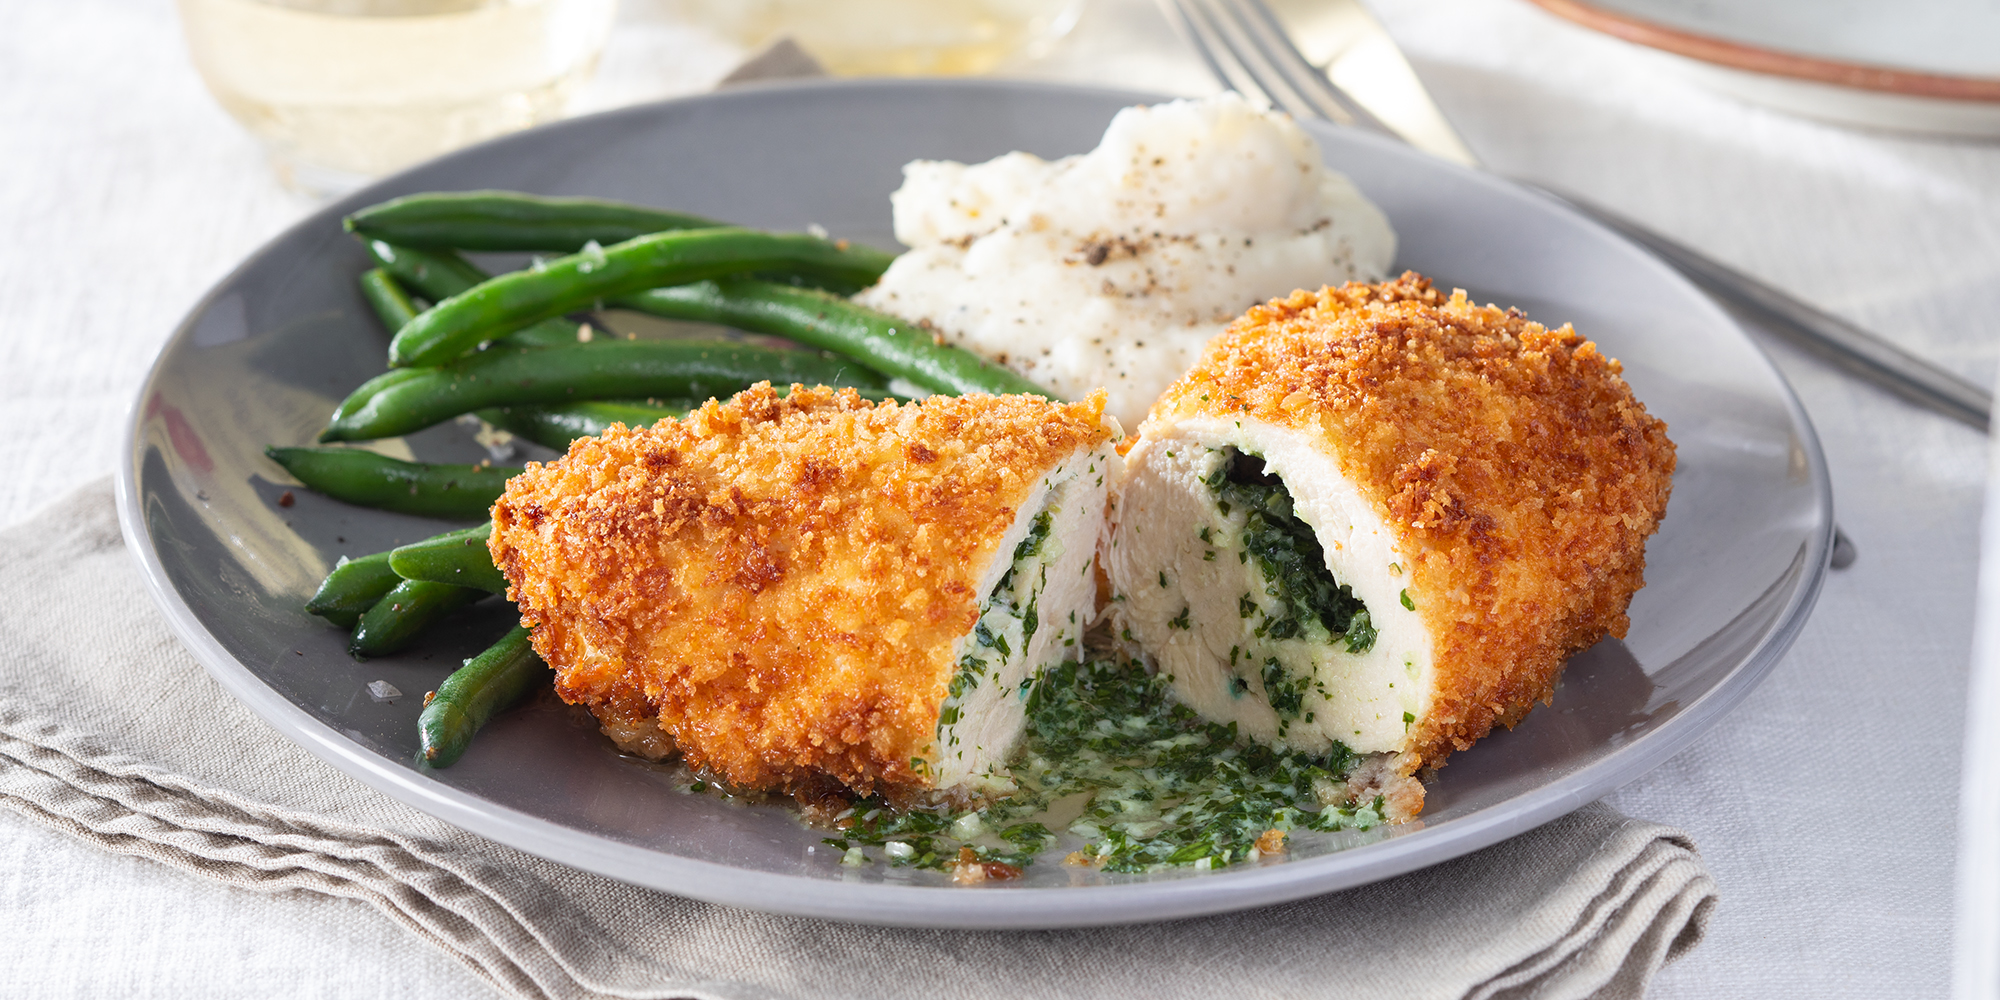 Chicken Kiev cut in half to reveal the bight herbs inside. Served with green beans and mashed potatoes